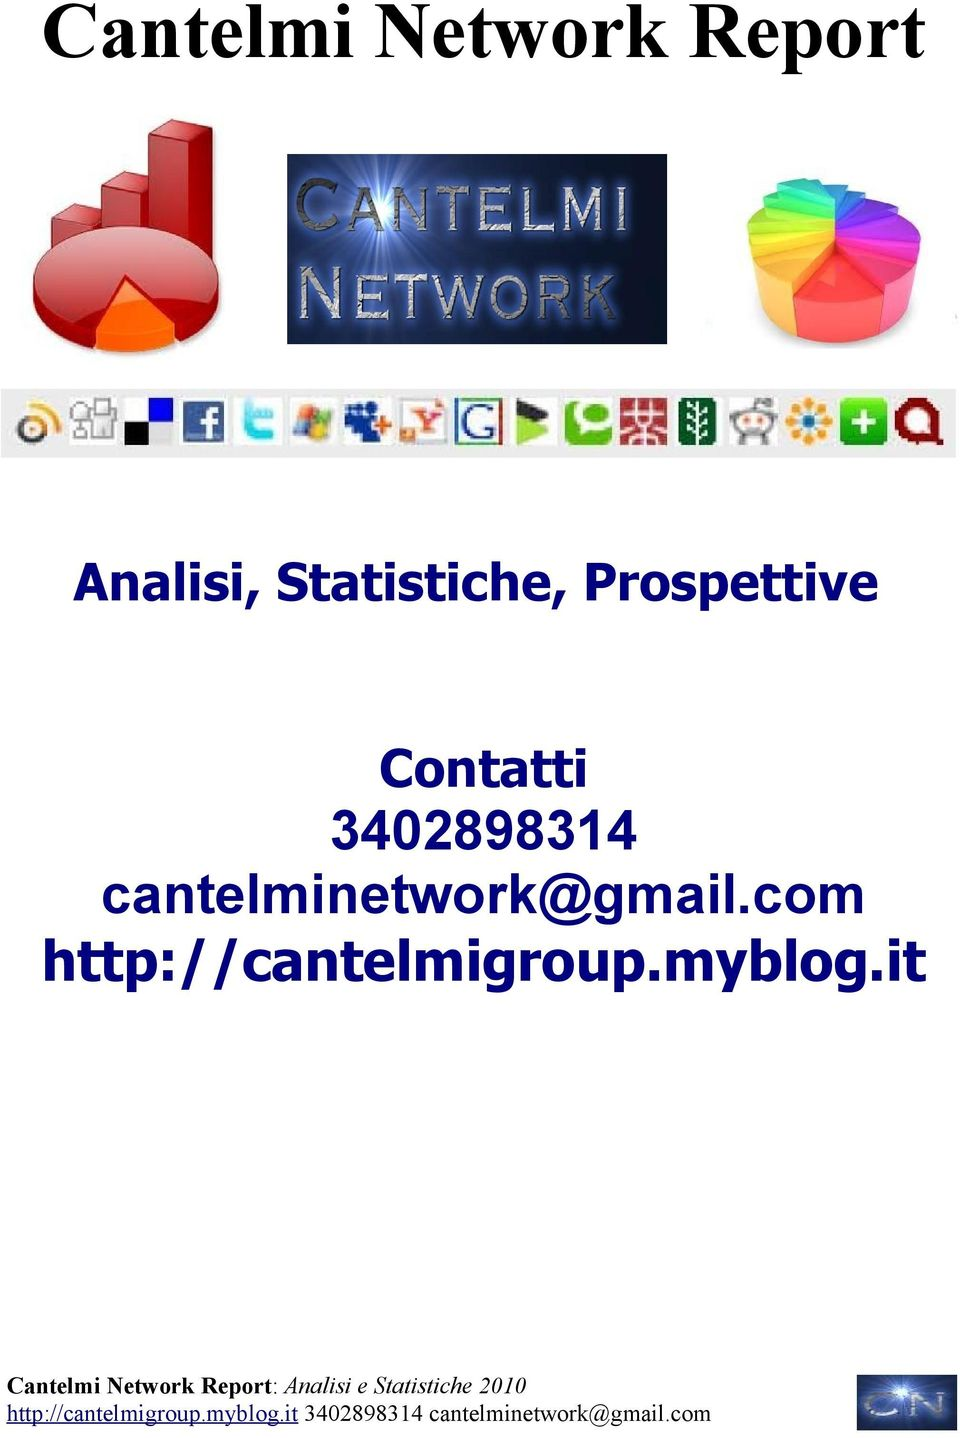 3402898314 cantelminetwork@gmail.